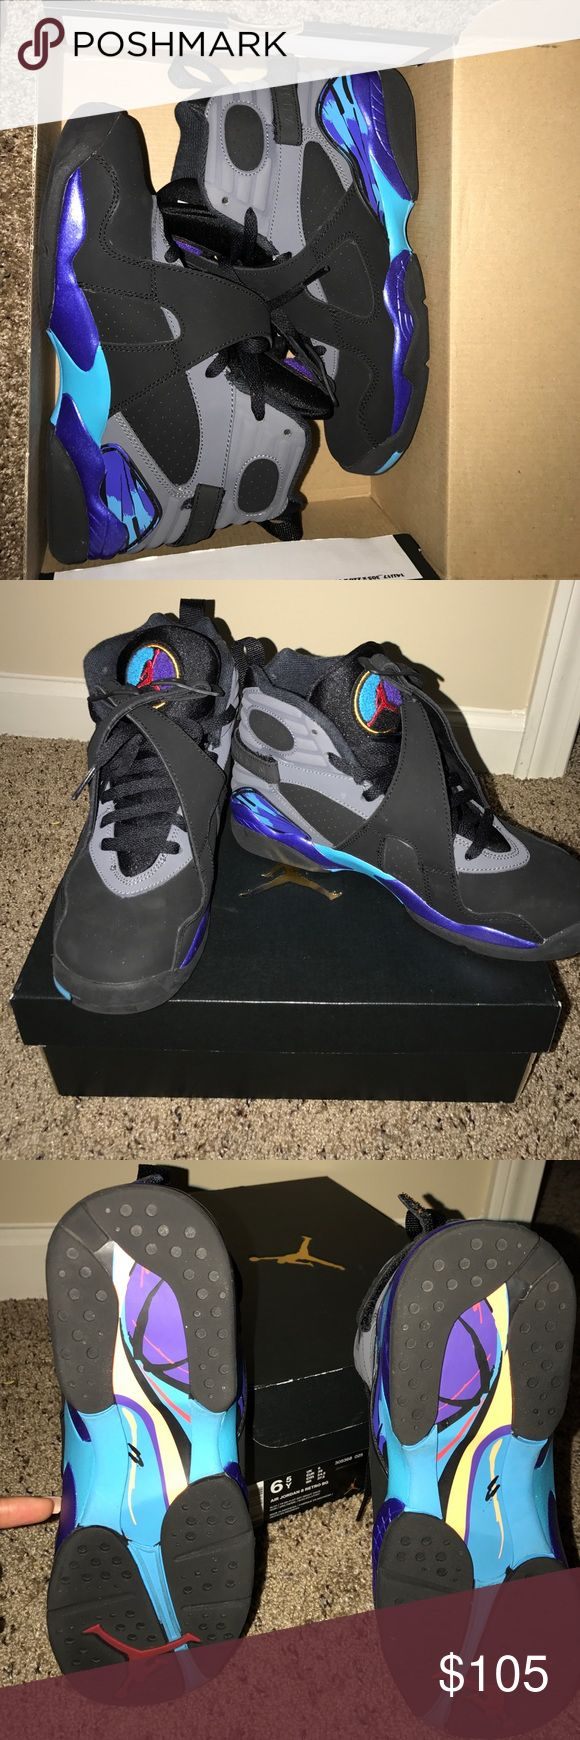 Air Jordan Aqua 8. Size 6.5Y. No scuffs. No scratches. No marks. Only worn once. Comes with original box. 100% Authentic. Jordan Shoes Sneakers